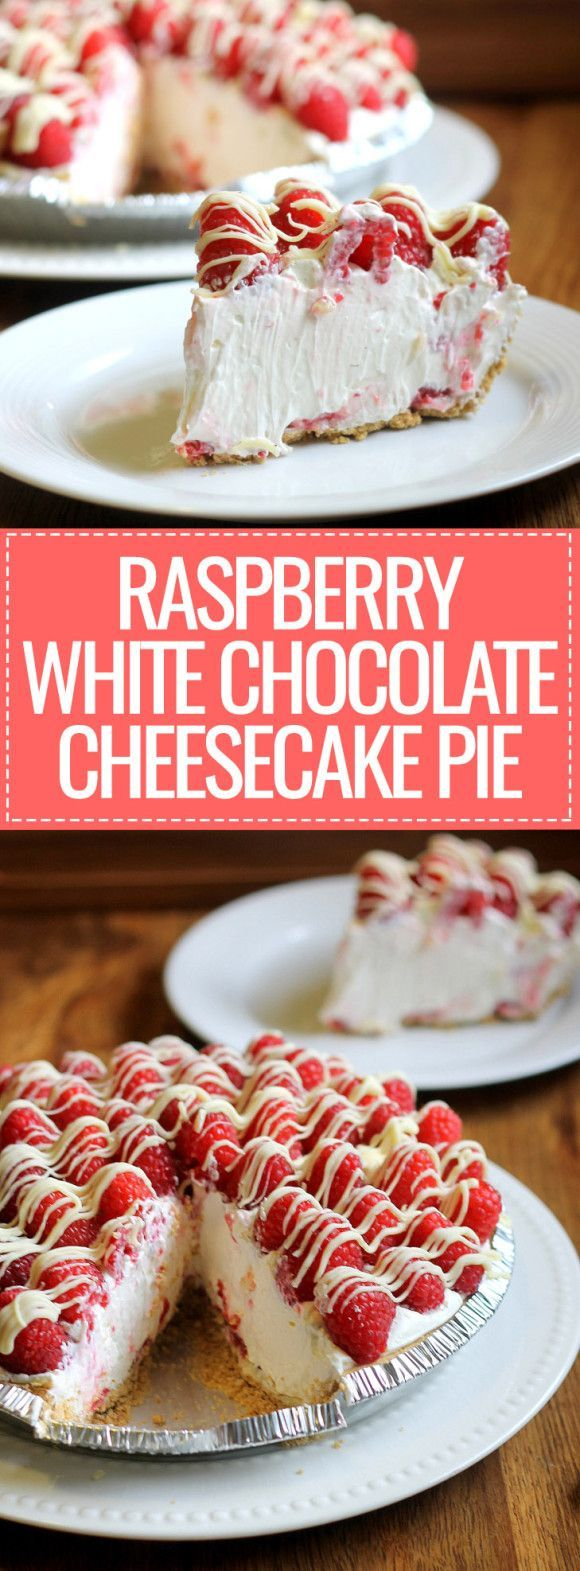 no-bake Raspberry White Chocolate Cheesecake Pie comes together in 15 minutes and only has six ingredients but is impressive enough to serve to company!